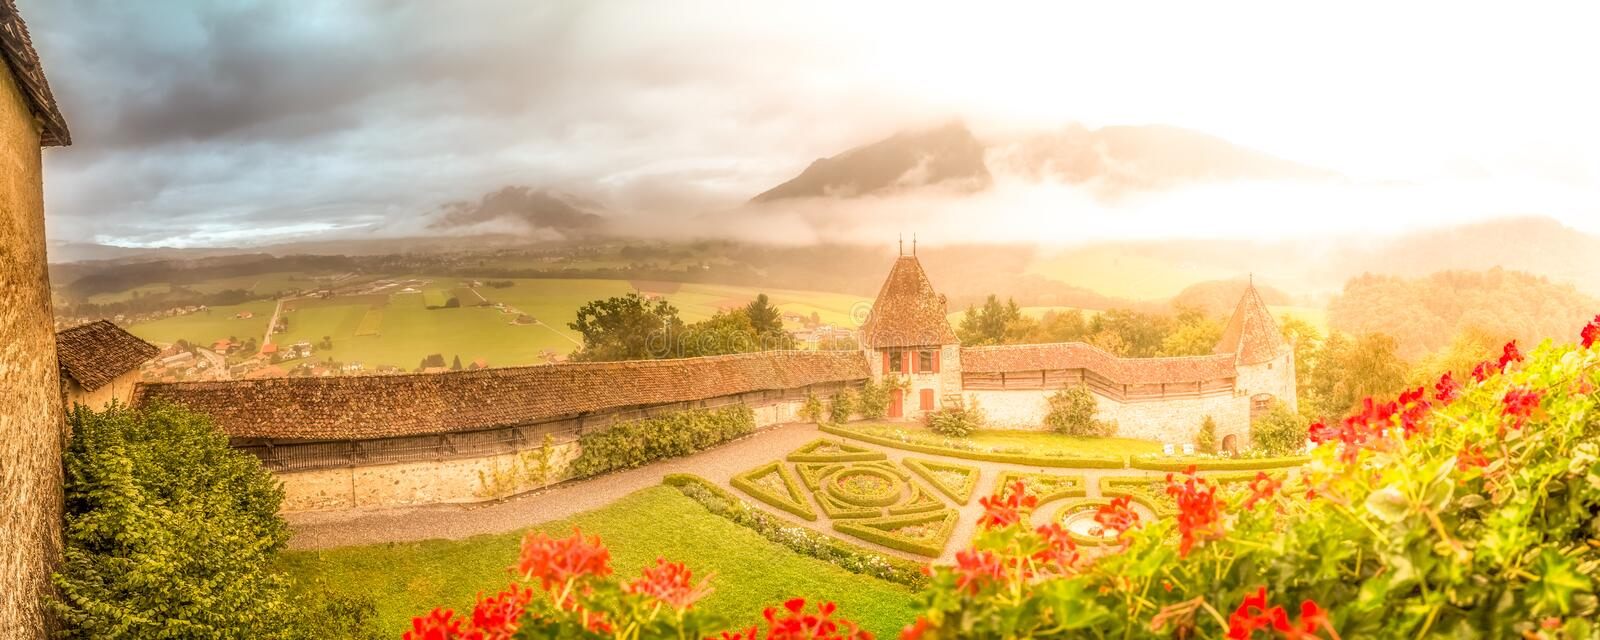 Castle Gardens royalty free stock image